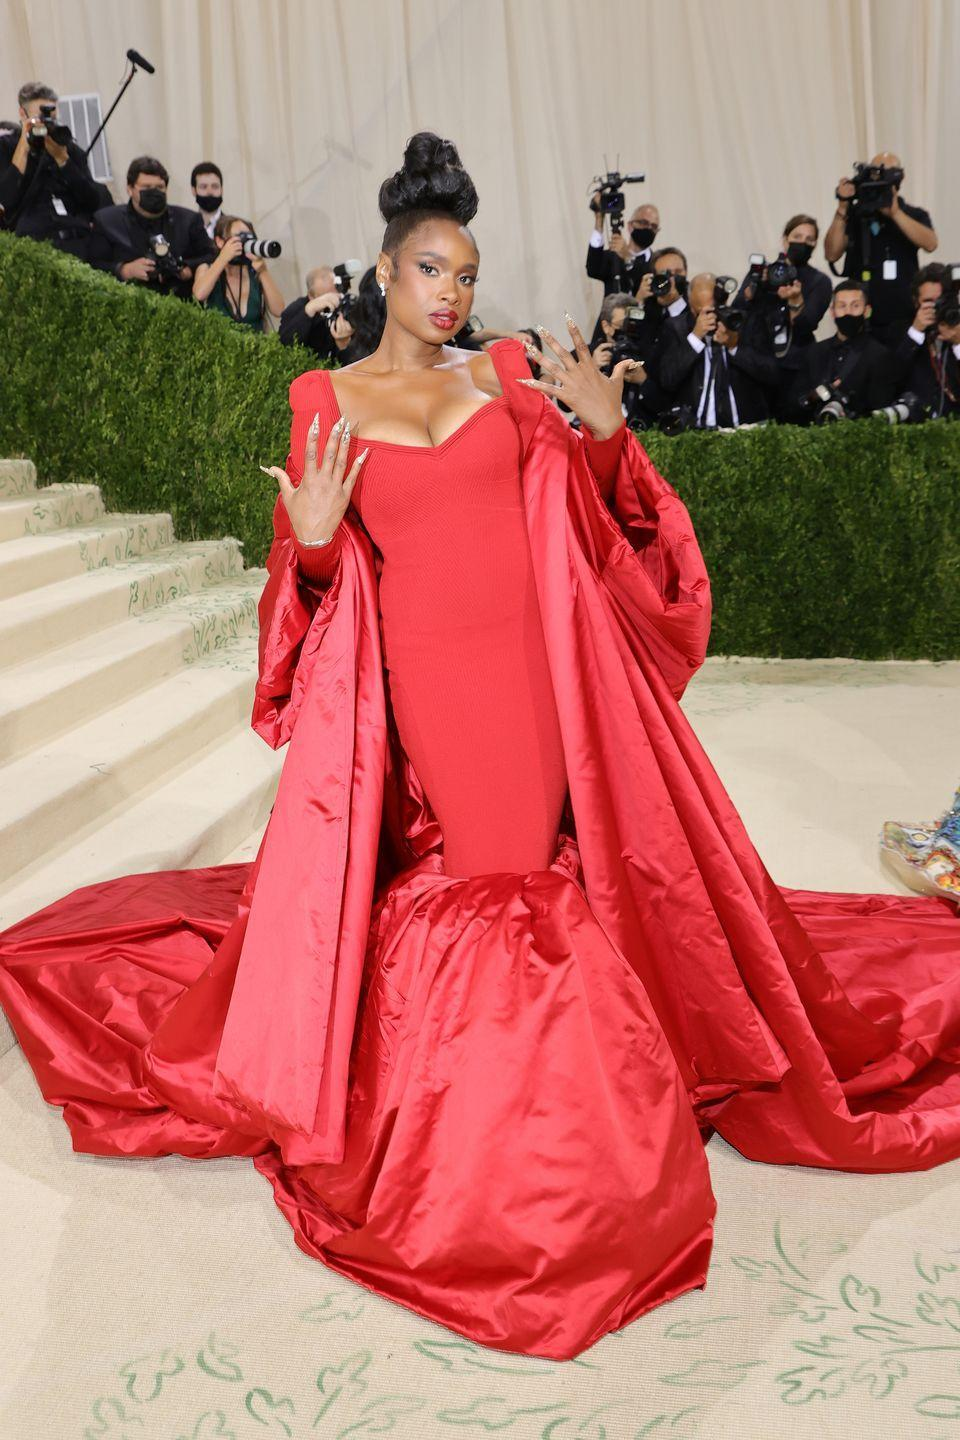 <p>The actor wore a red gown by AZ Factory for the Met Gala.</p>